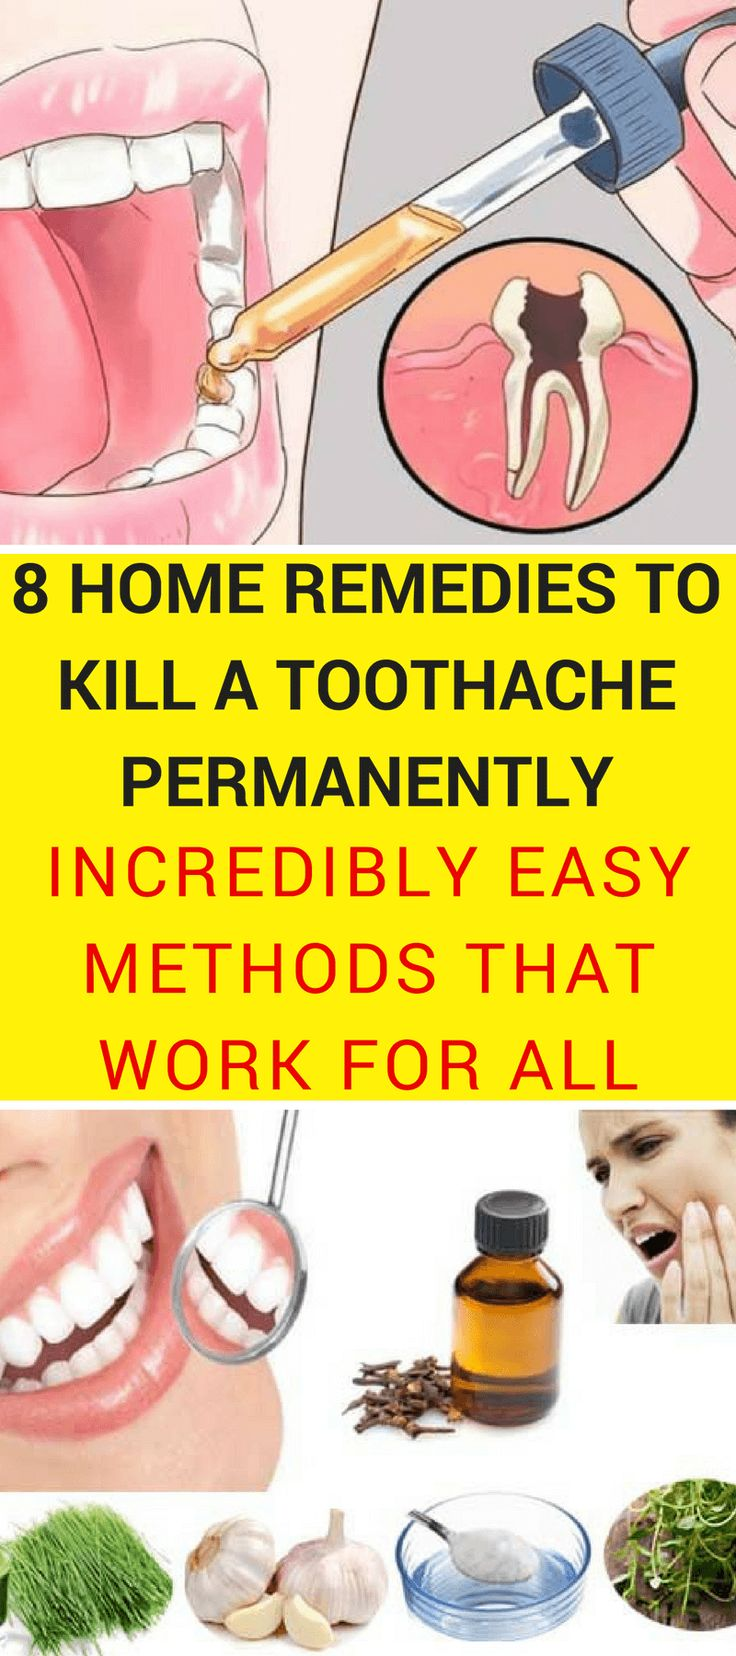 Atoothache issomething which weall have experienced atleast once inour lifetime. That's why we brought you some homemade remedies that will cost you nothing compared tothe dentist's fee. Natural teething remedies   Abcess tooth remedy   Natural alternatives   Natural toothache remedies   Tooth pain essential